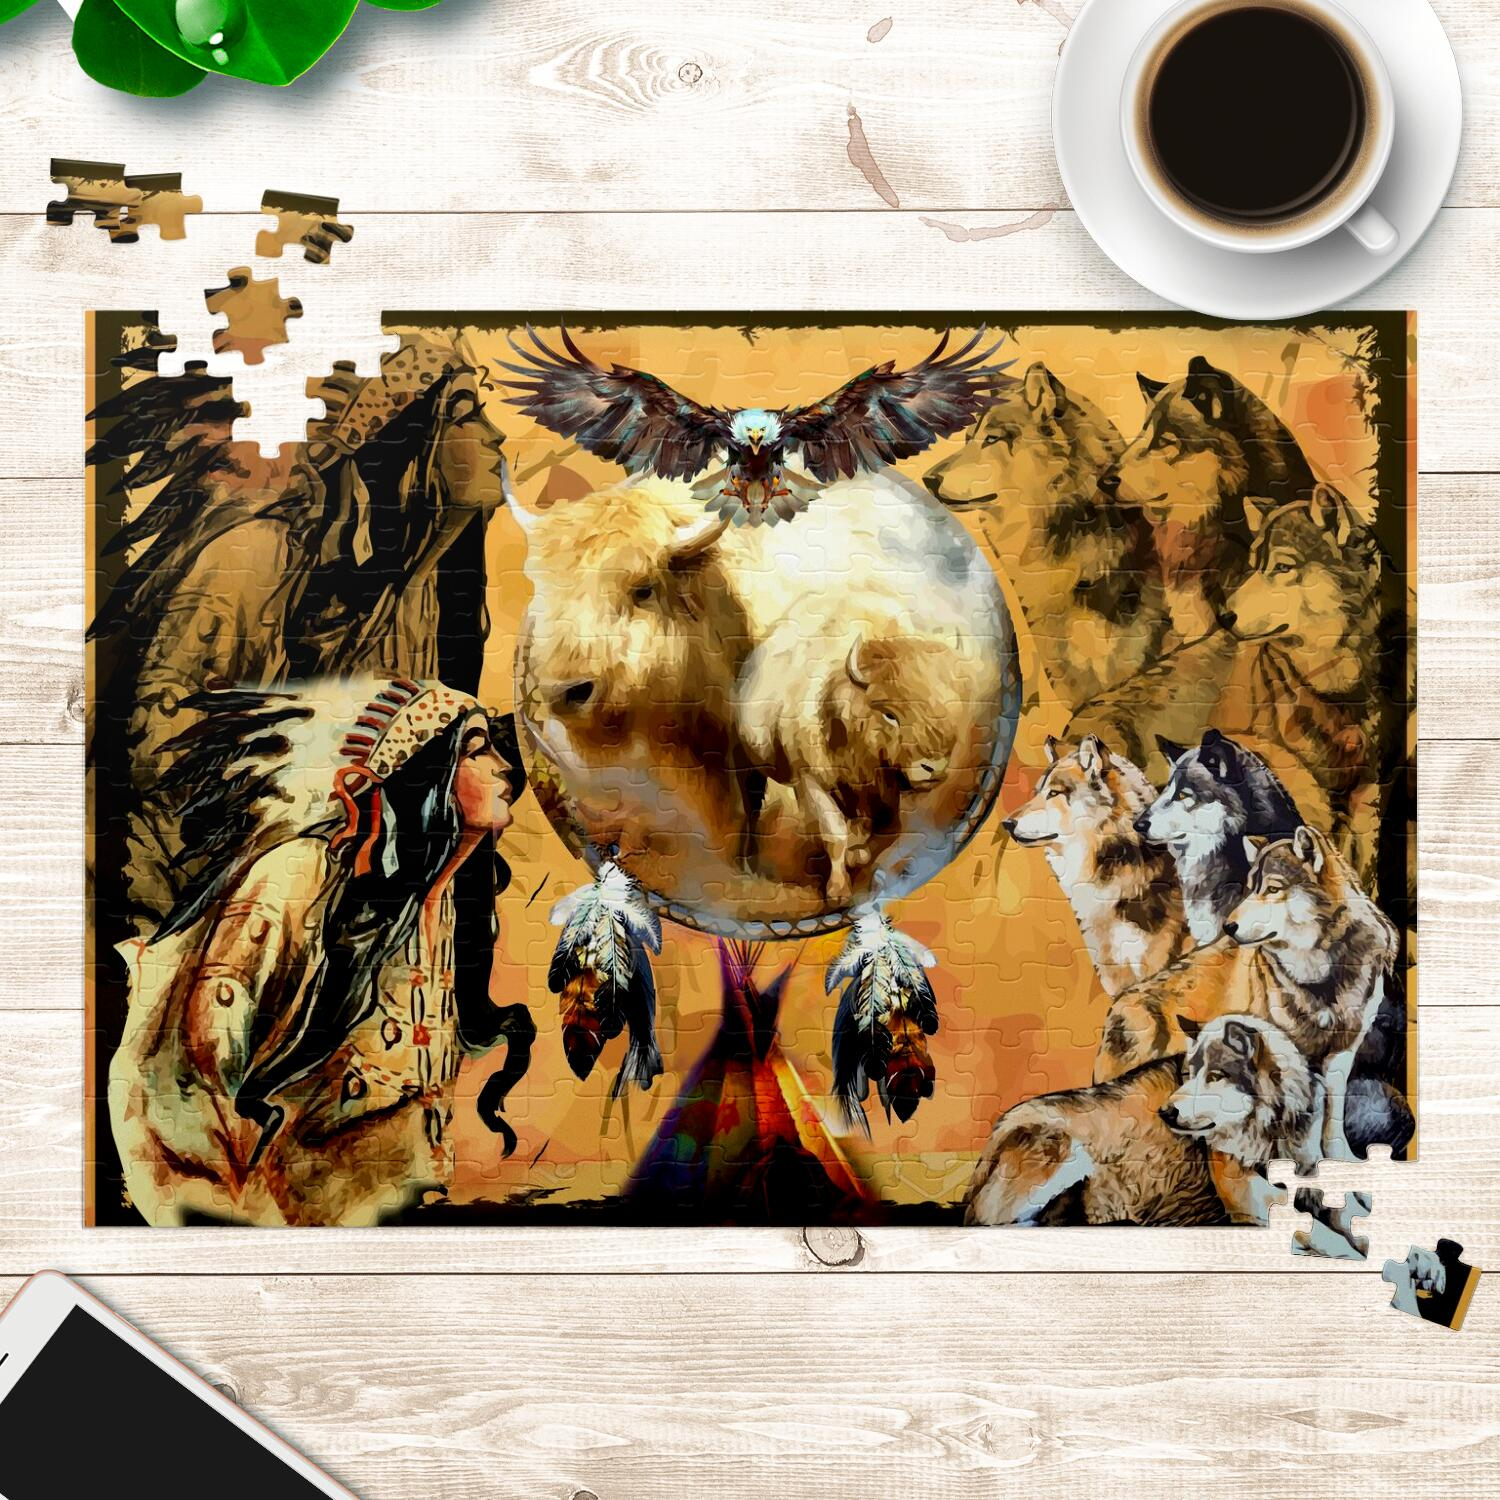 Buffalo Dreamcatcher Jigsaw Puzzles